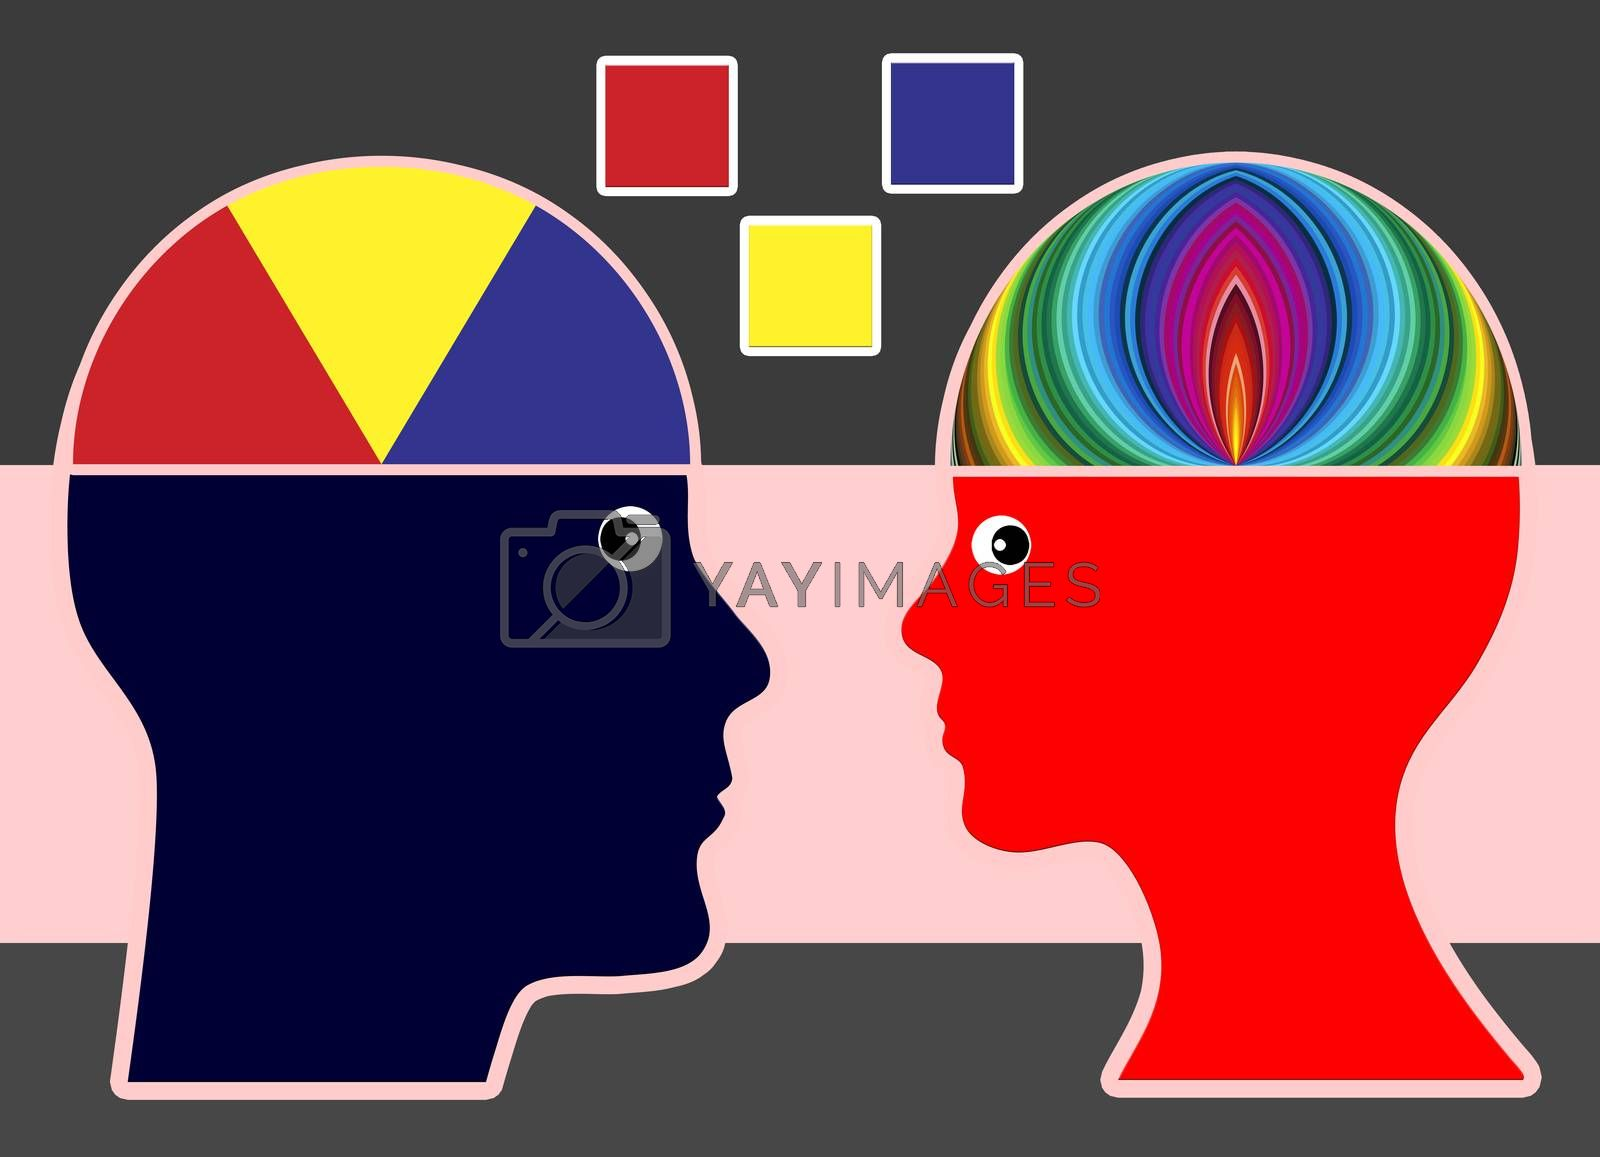 Man and woman with different preferences for fashion and colors